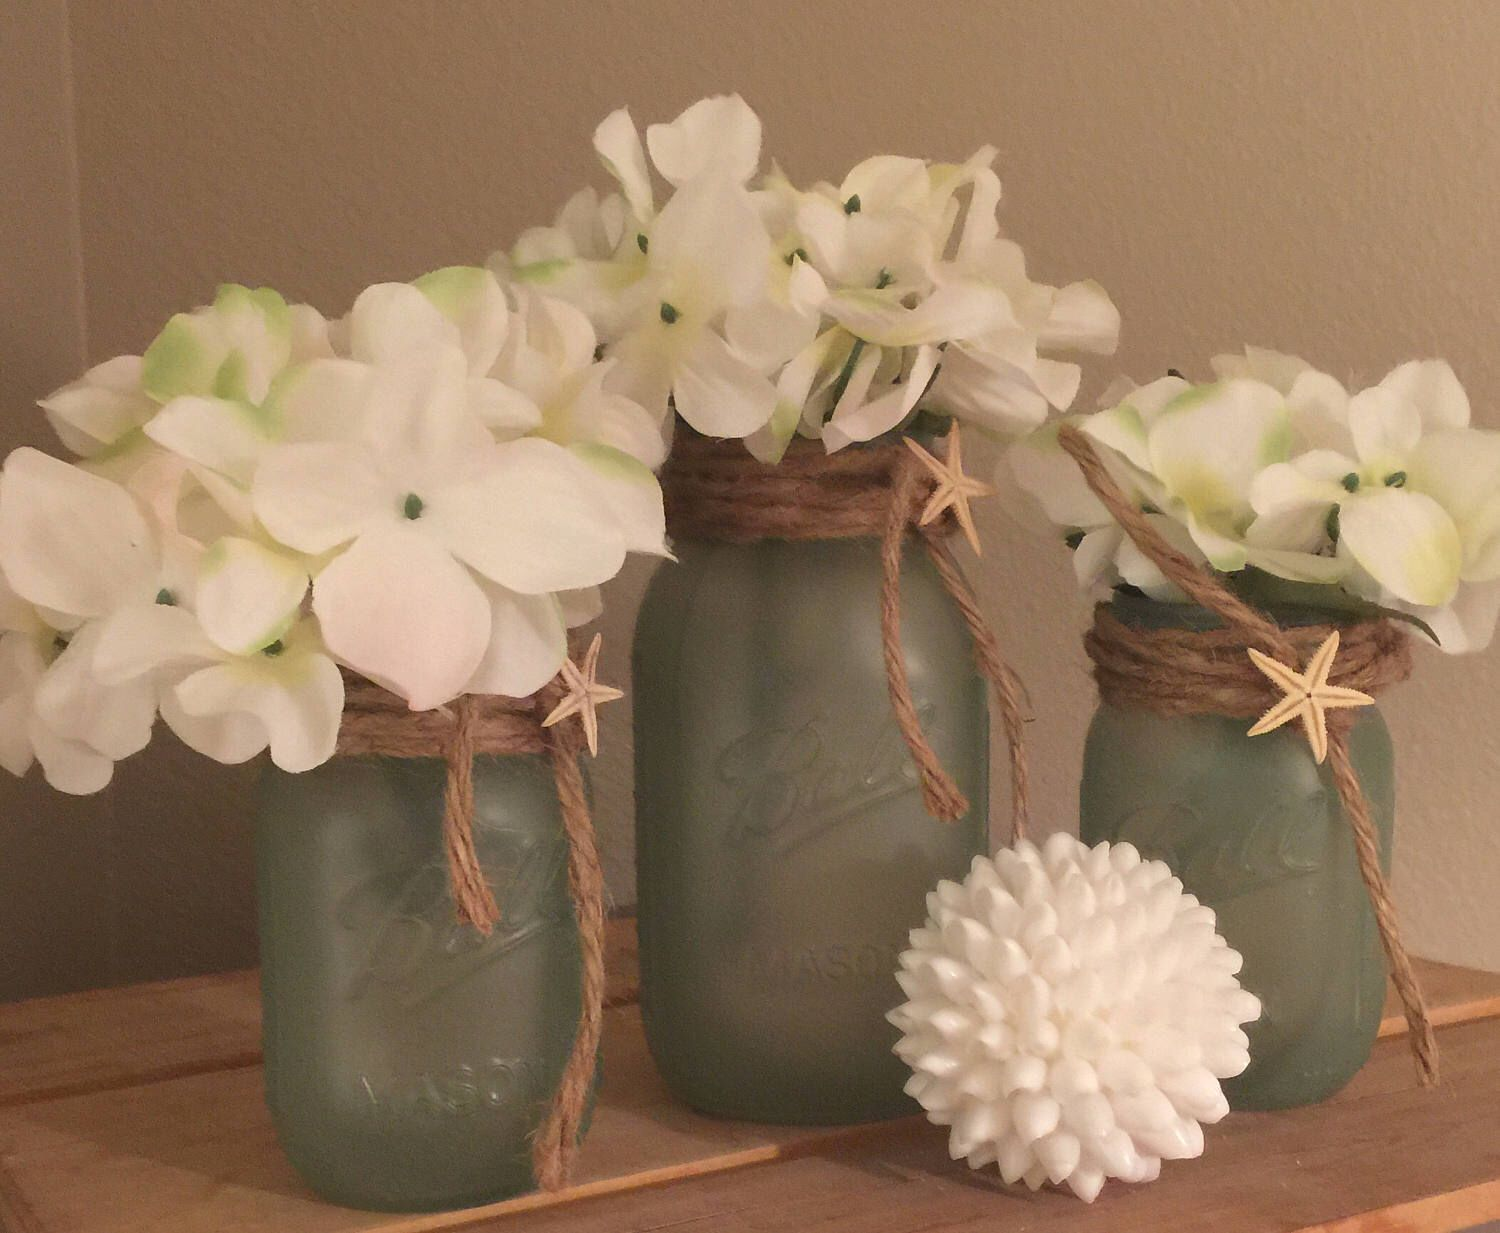 Seaglass beach decor mason jars centerpieces beach bathroom decor beach decor beach wedding decorations beach theme bridal shower decor beach centerpieces junglespirit Image collections